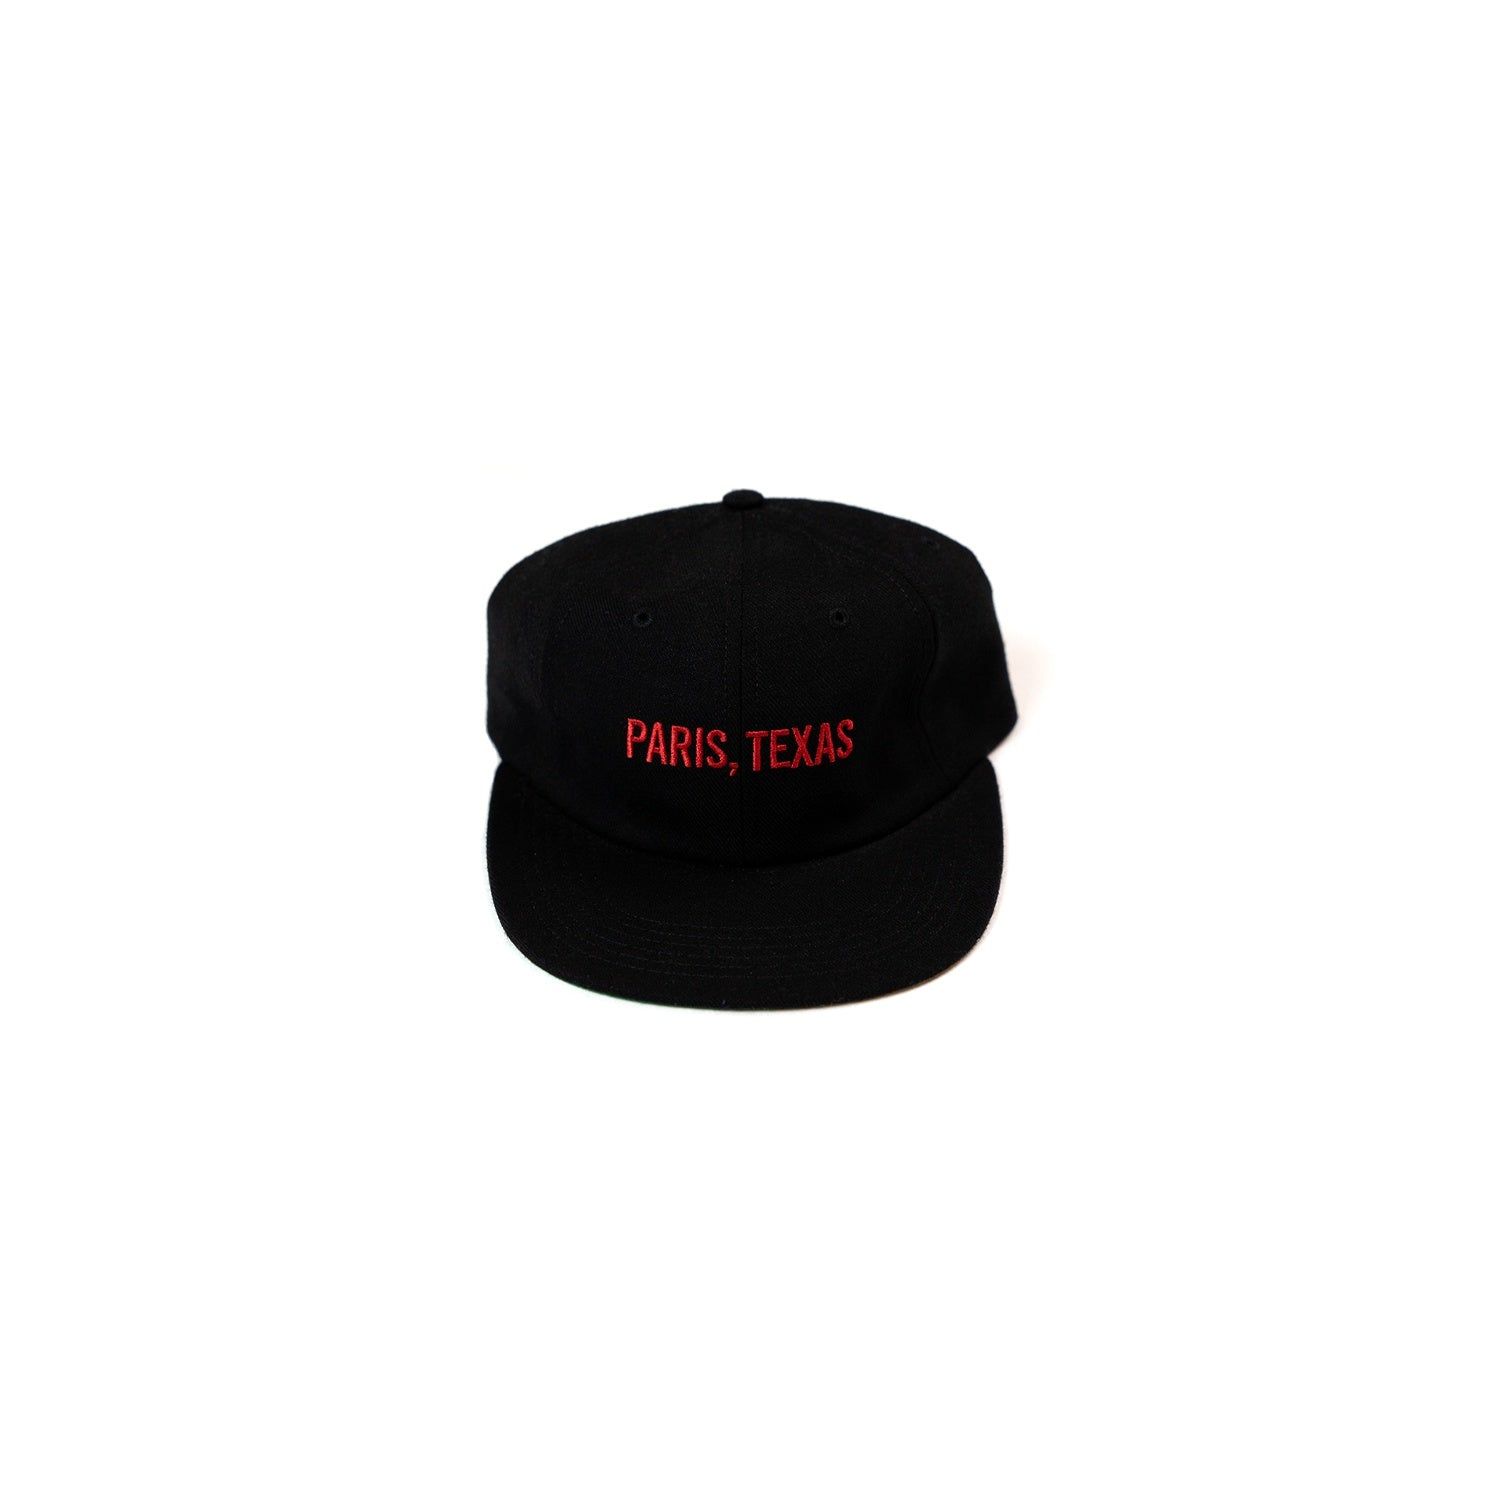 Cult Classic Paris Texas Hat